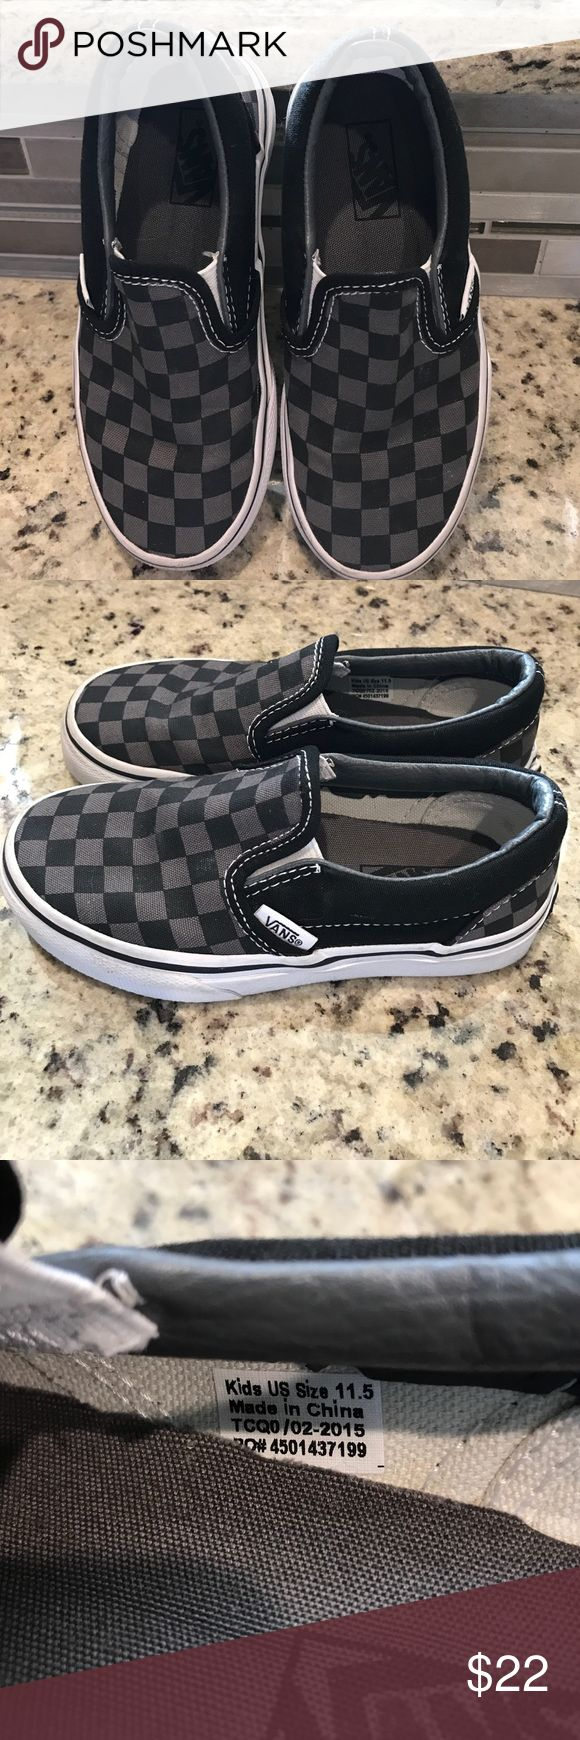 Child's Vans checkerboard slip on shoes. NWOT Vans shoes. Children's size 11.5. Gray & black checks, black and white rubber soles. Never worn. No box so I couldn't return them. Smoke free home. Vans Shoes Sneakers